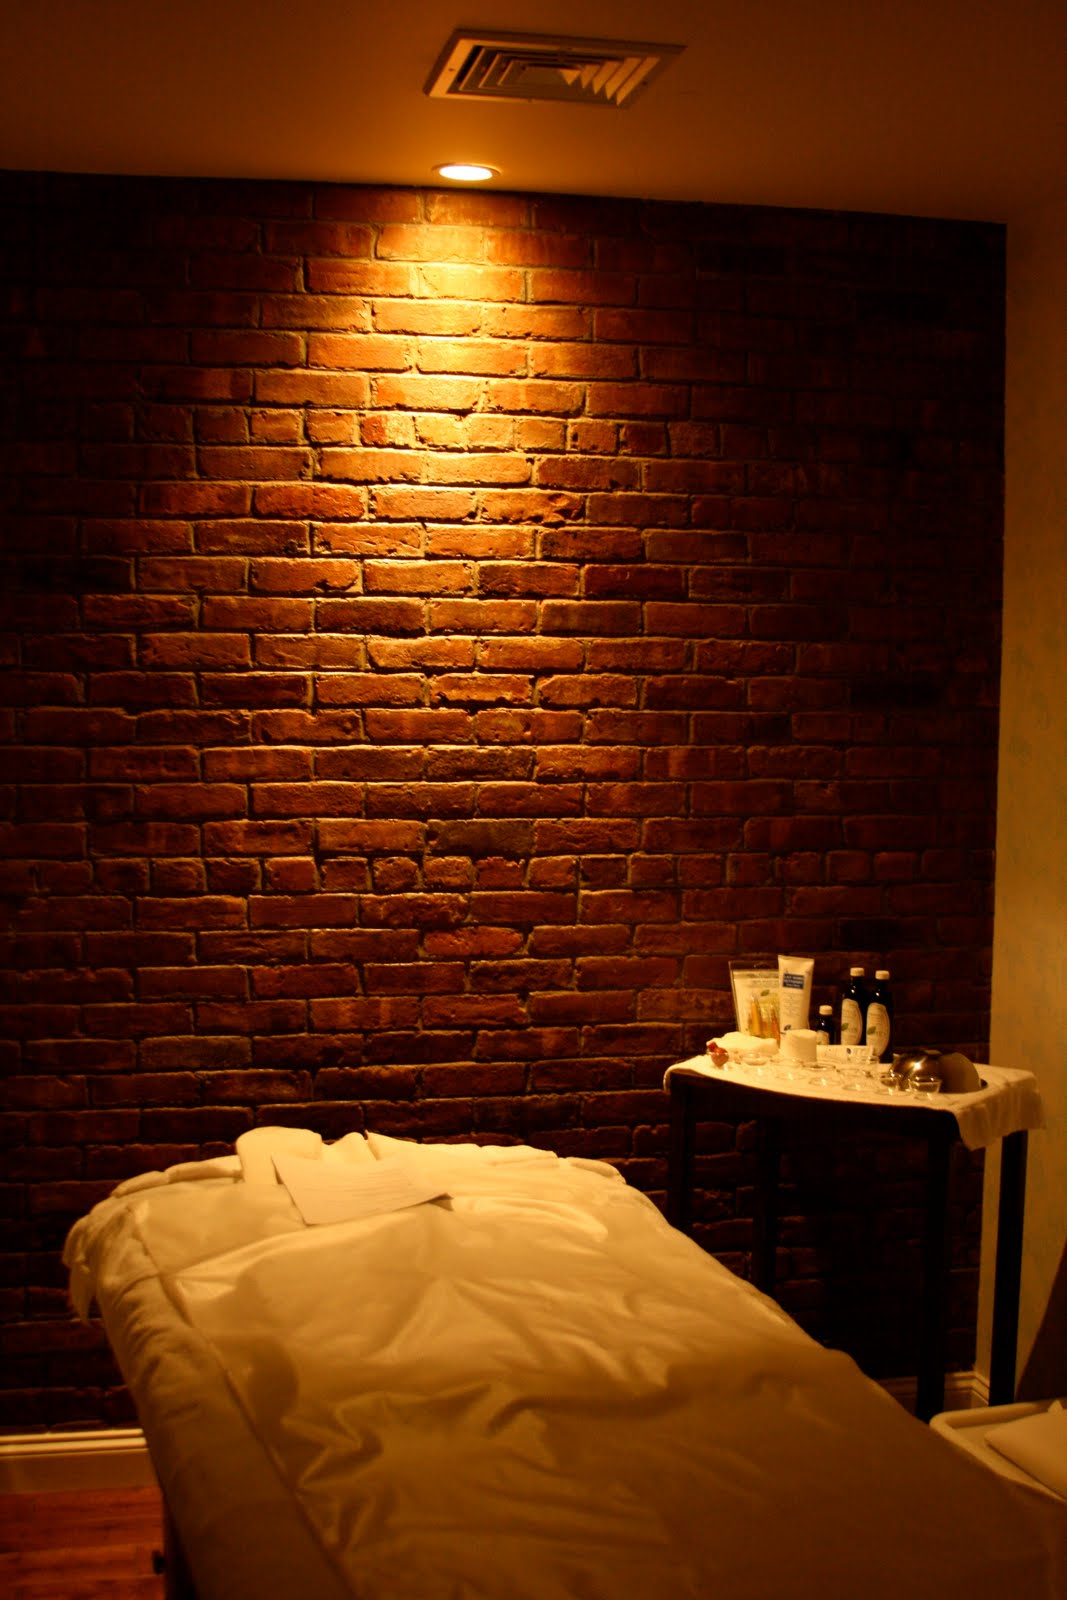 spa review spas in nyc the lost girls. Black Bedroom Furniture Sets. Home Design Ideas